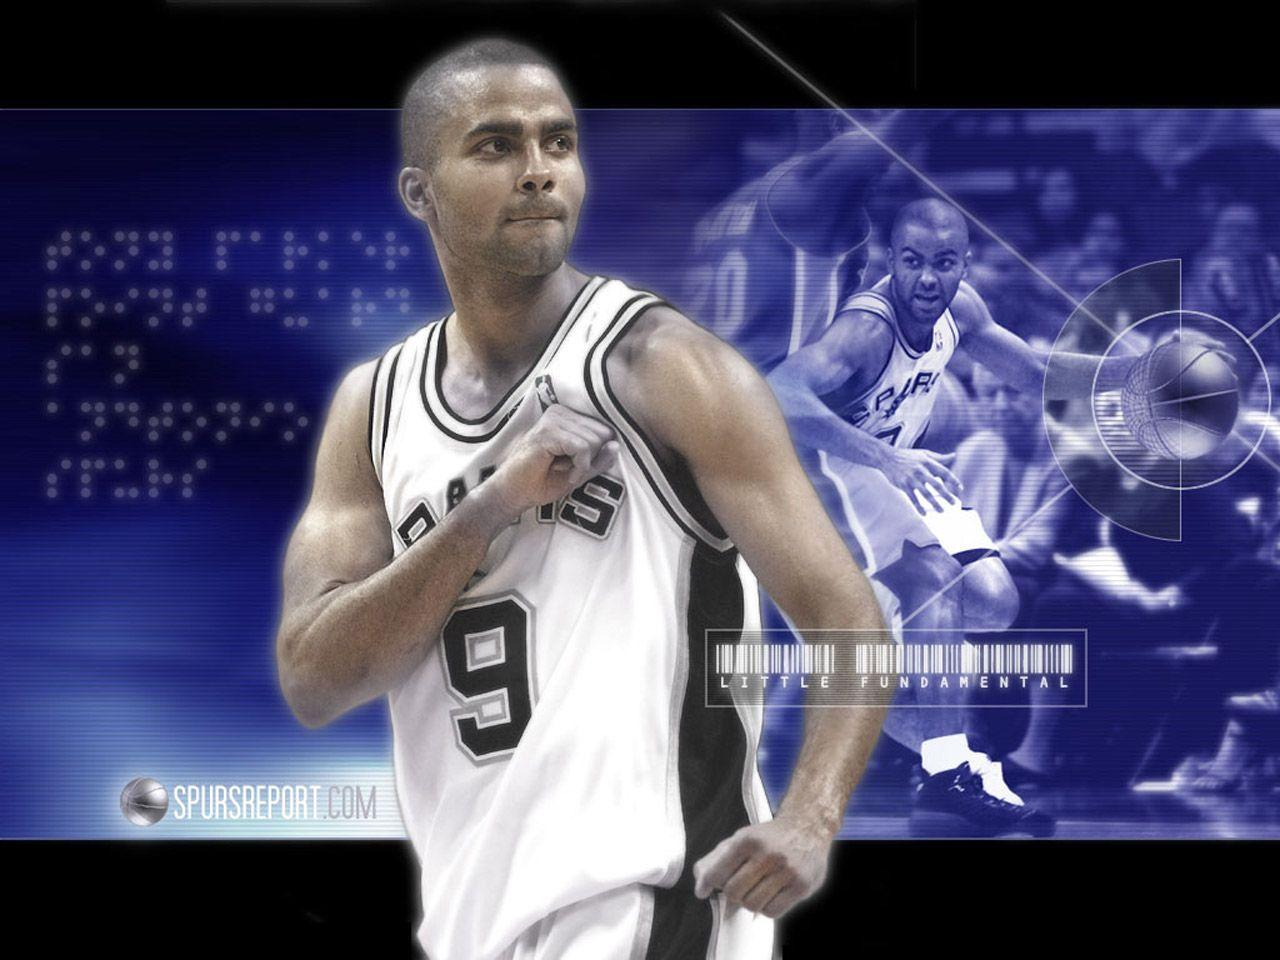 Tony Parker Spurs Wallpaper | Basketball Wallpapers at ...